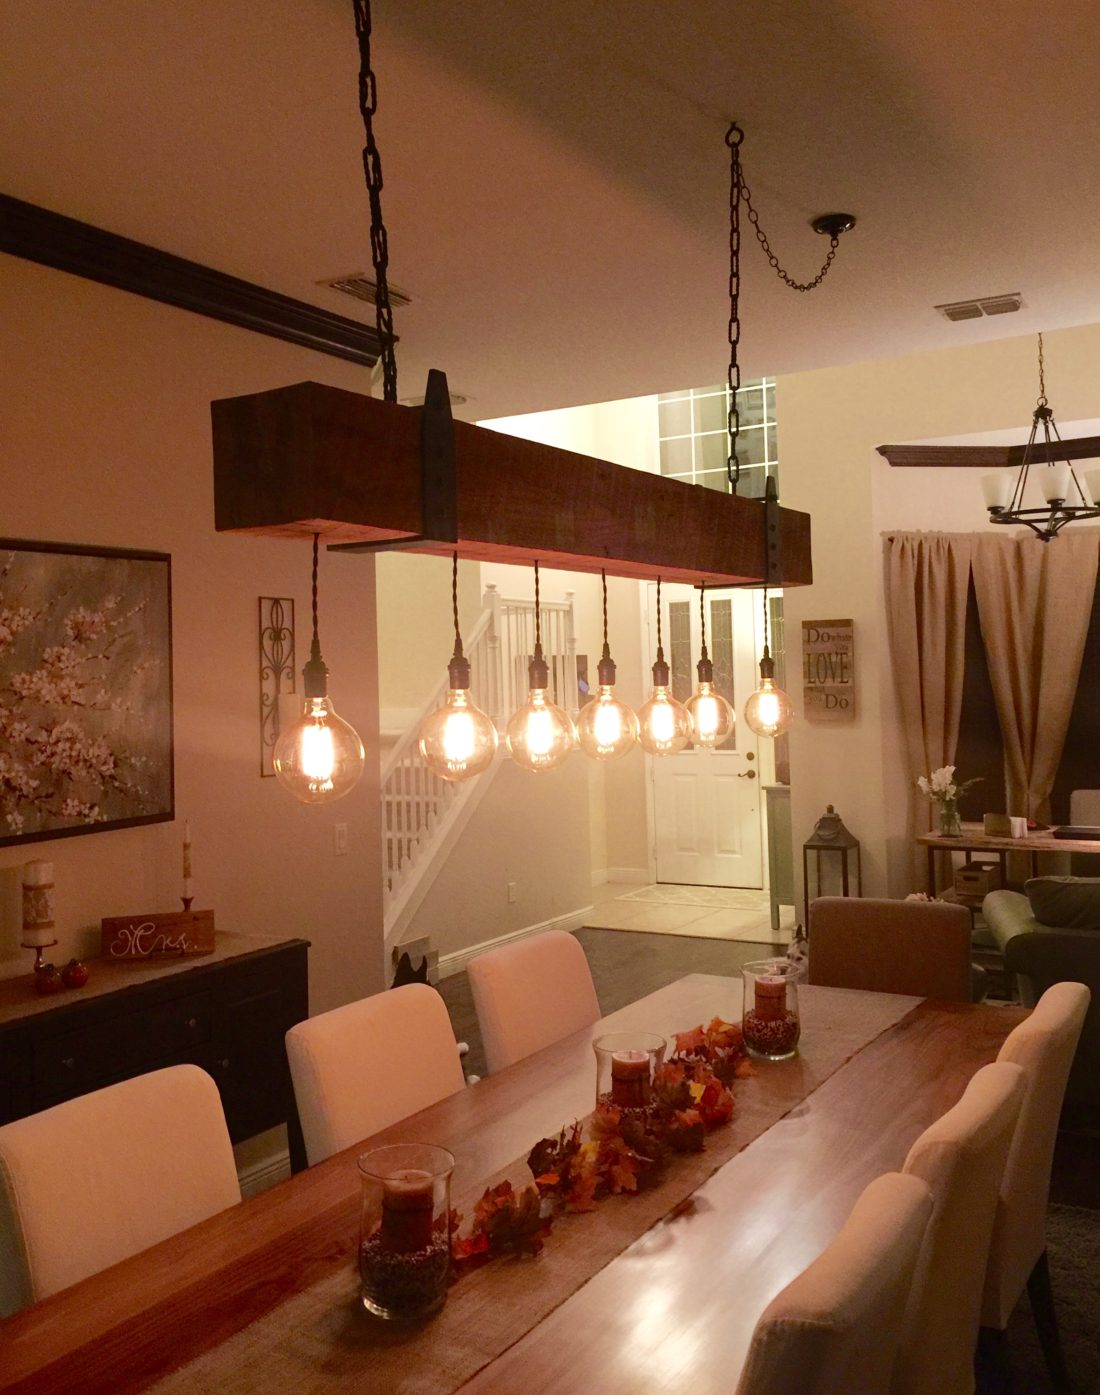 Reclaimed Wood Beam Chandelier With Edison Globe Lights